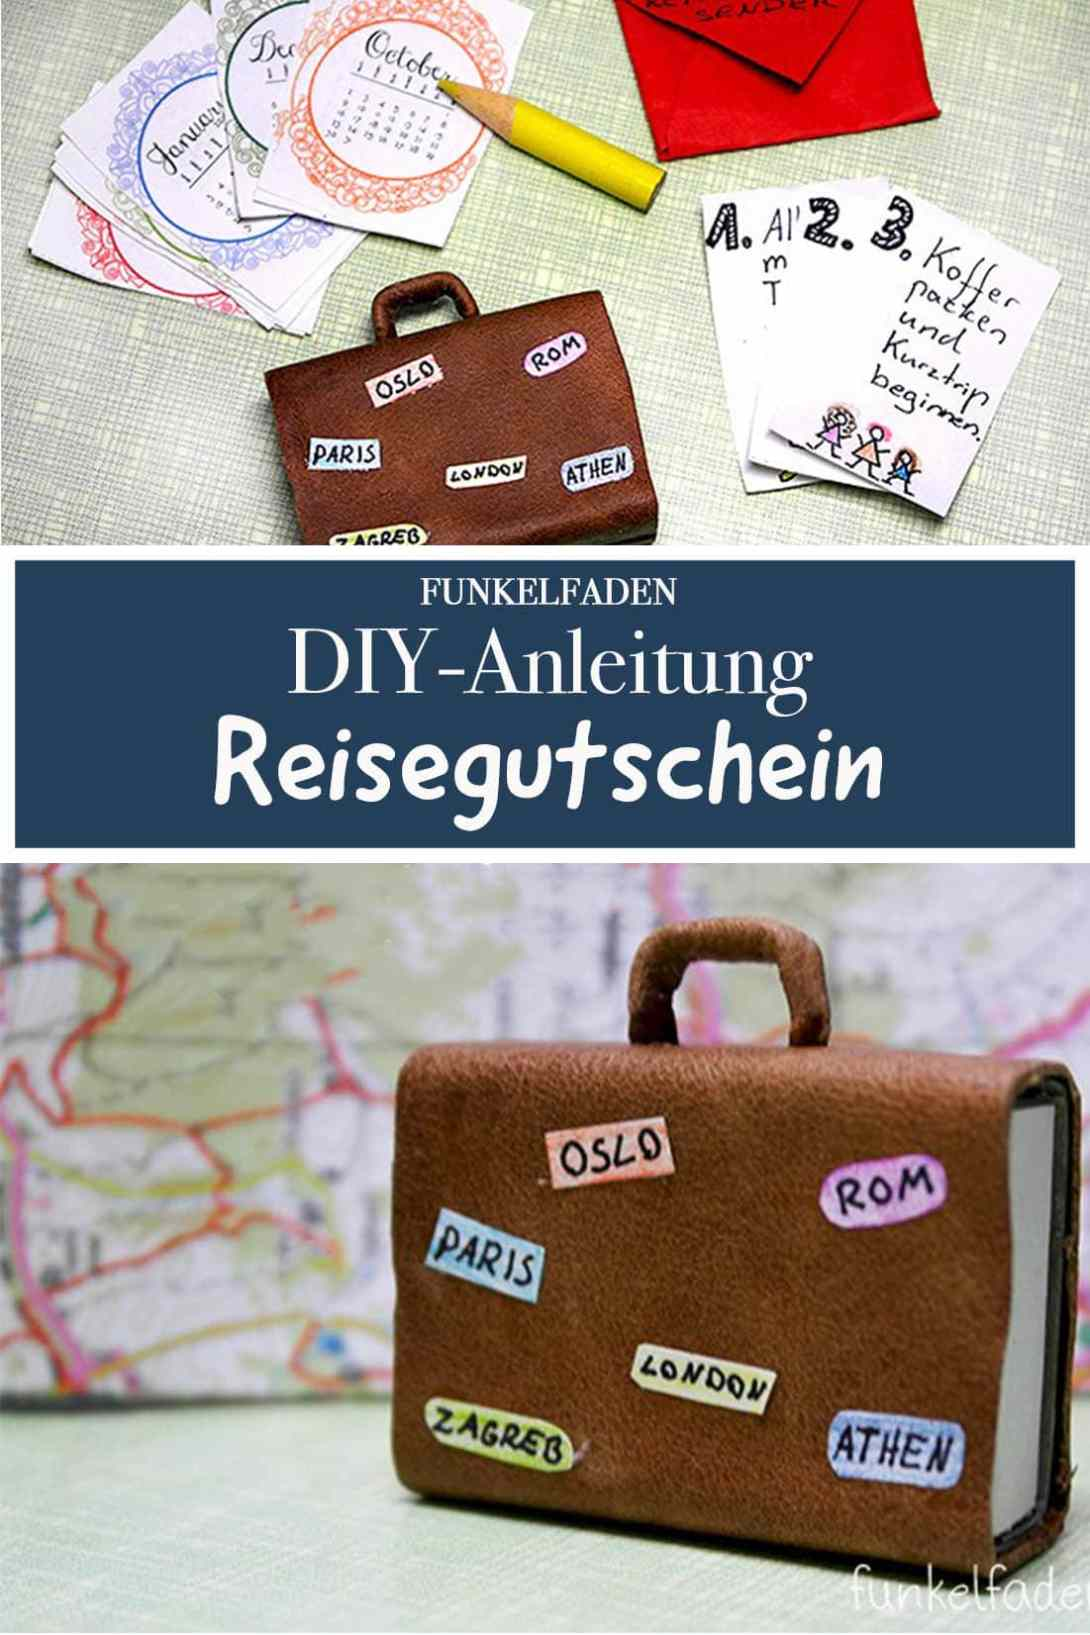 diy anleitung reisegutschein basten mit koffer anleitungen do it yourself bastelidee. Black Bedroom Furniture Sets. Home Design Ideas